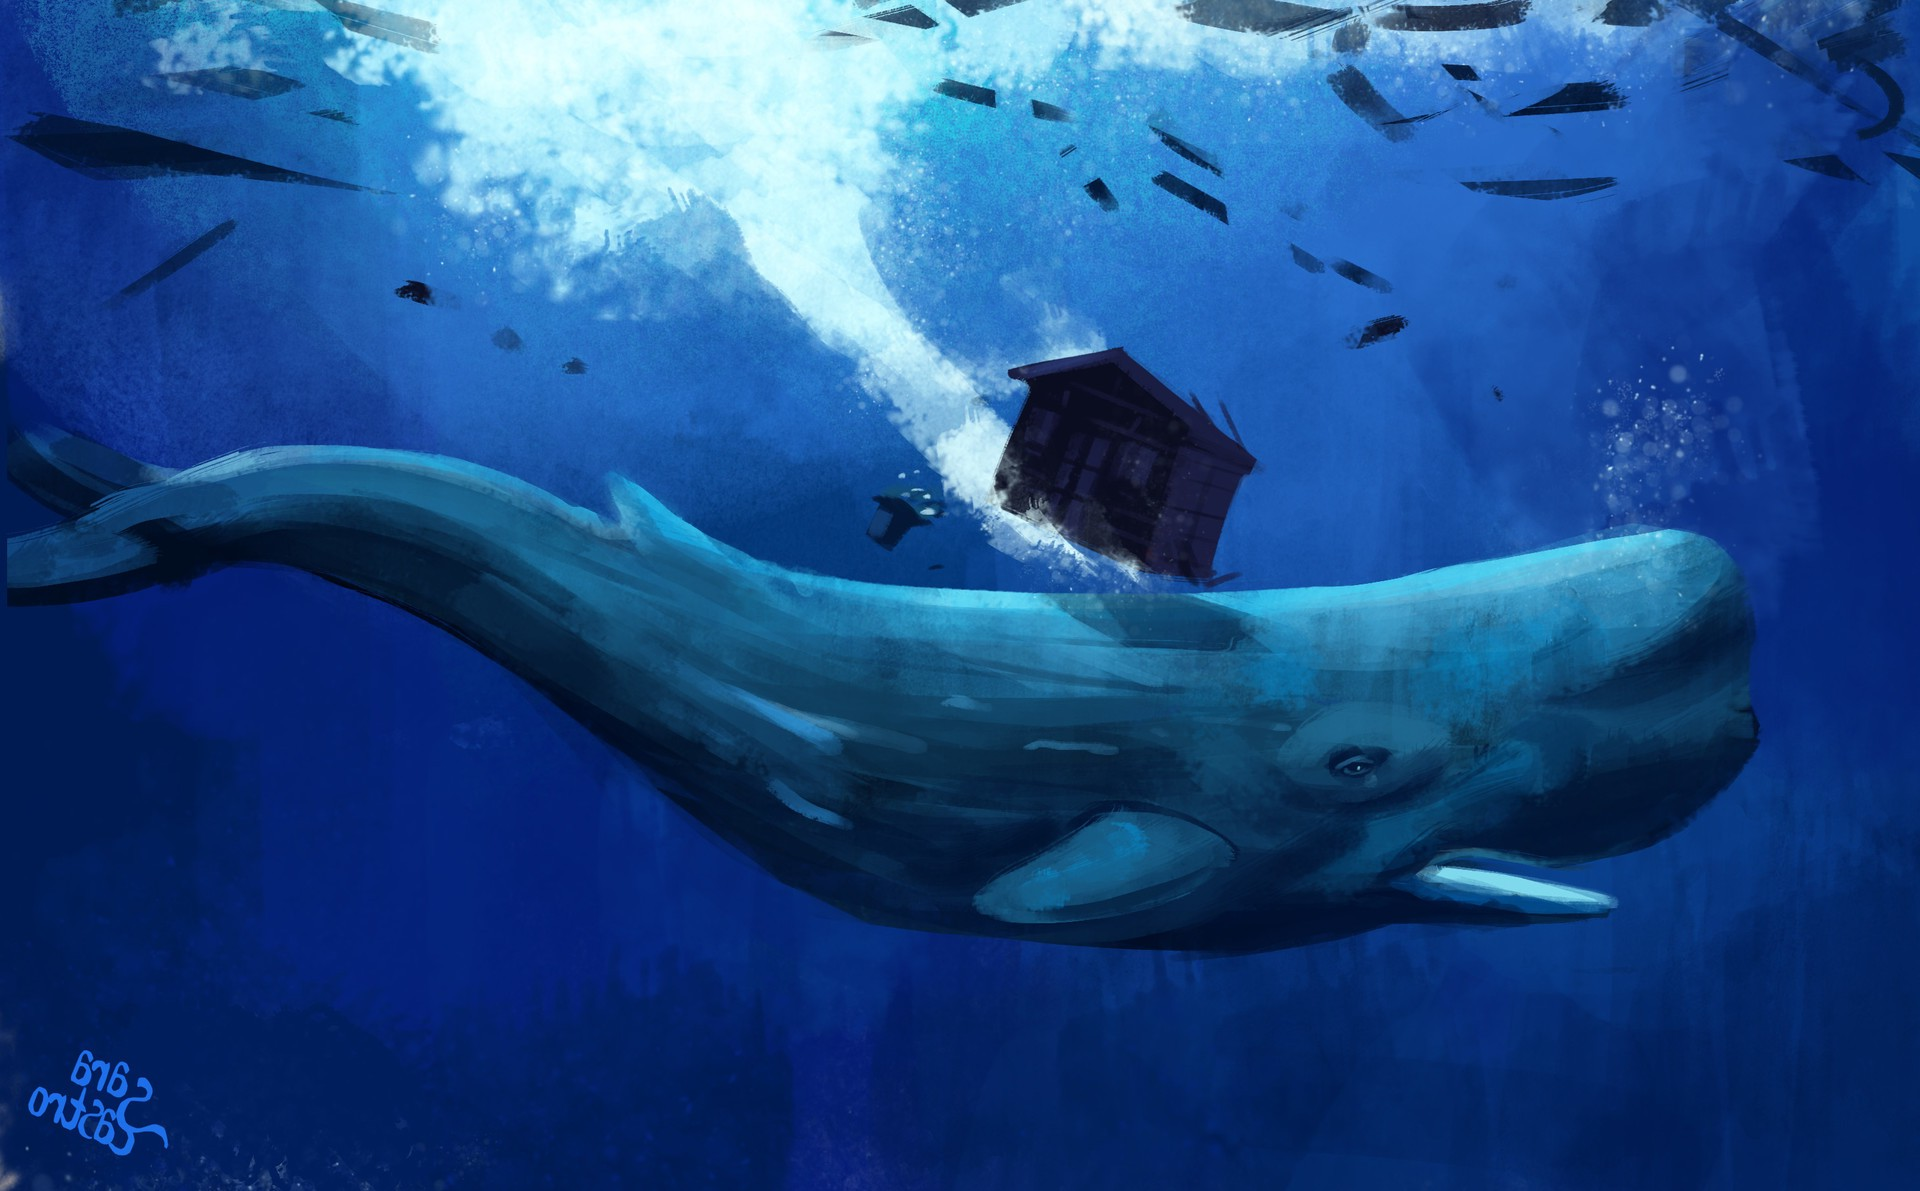 Creature 3d Movie Wallpaper Download Artwork Animals Whale Underwater Wallpapers Hd